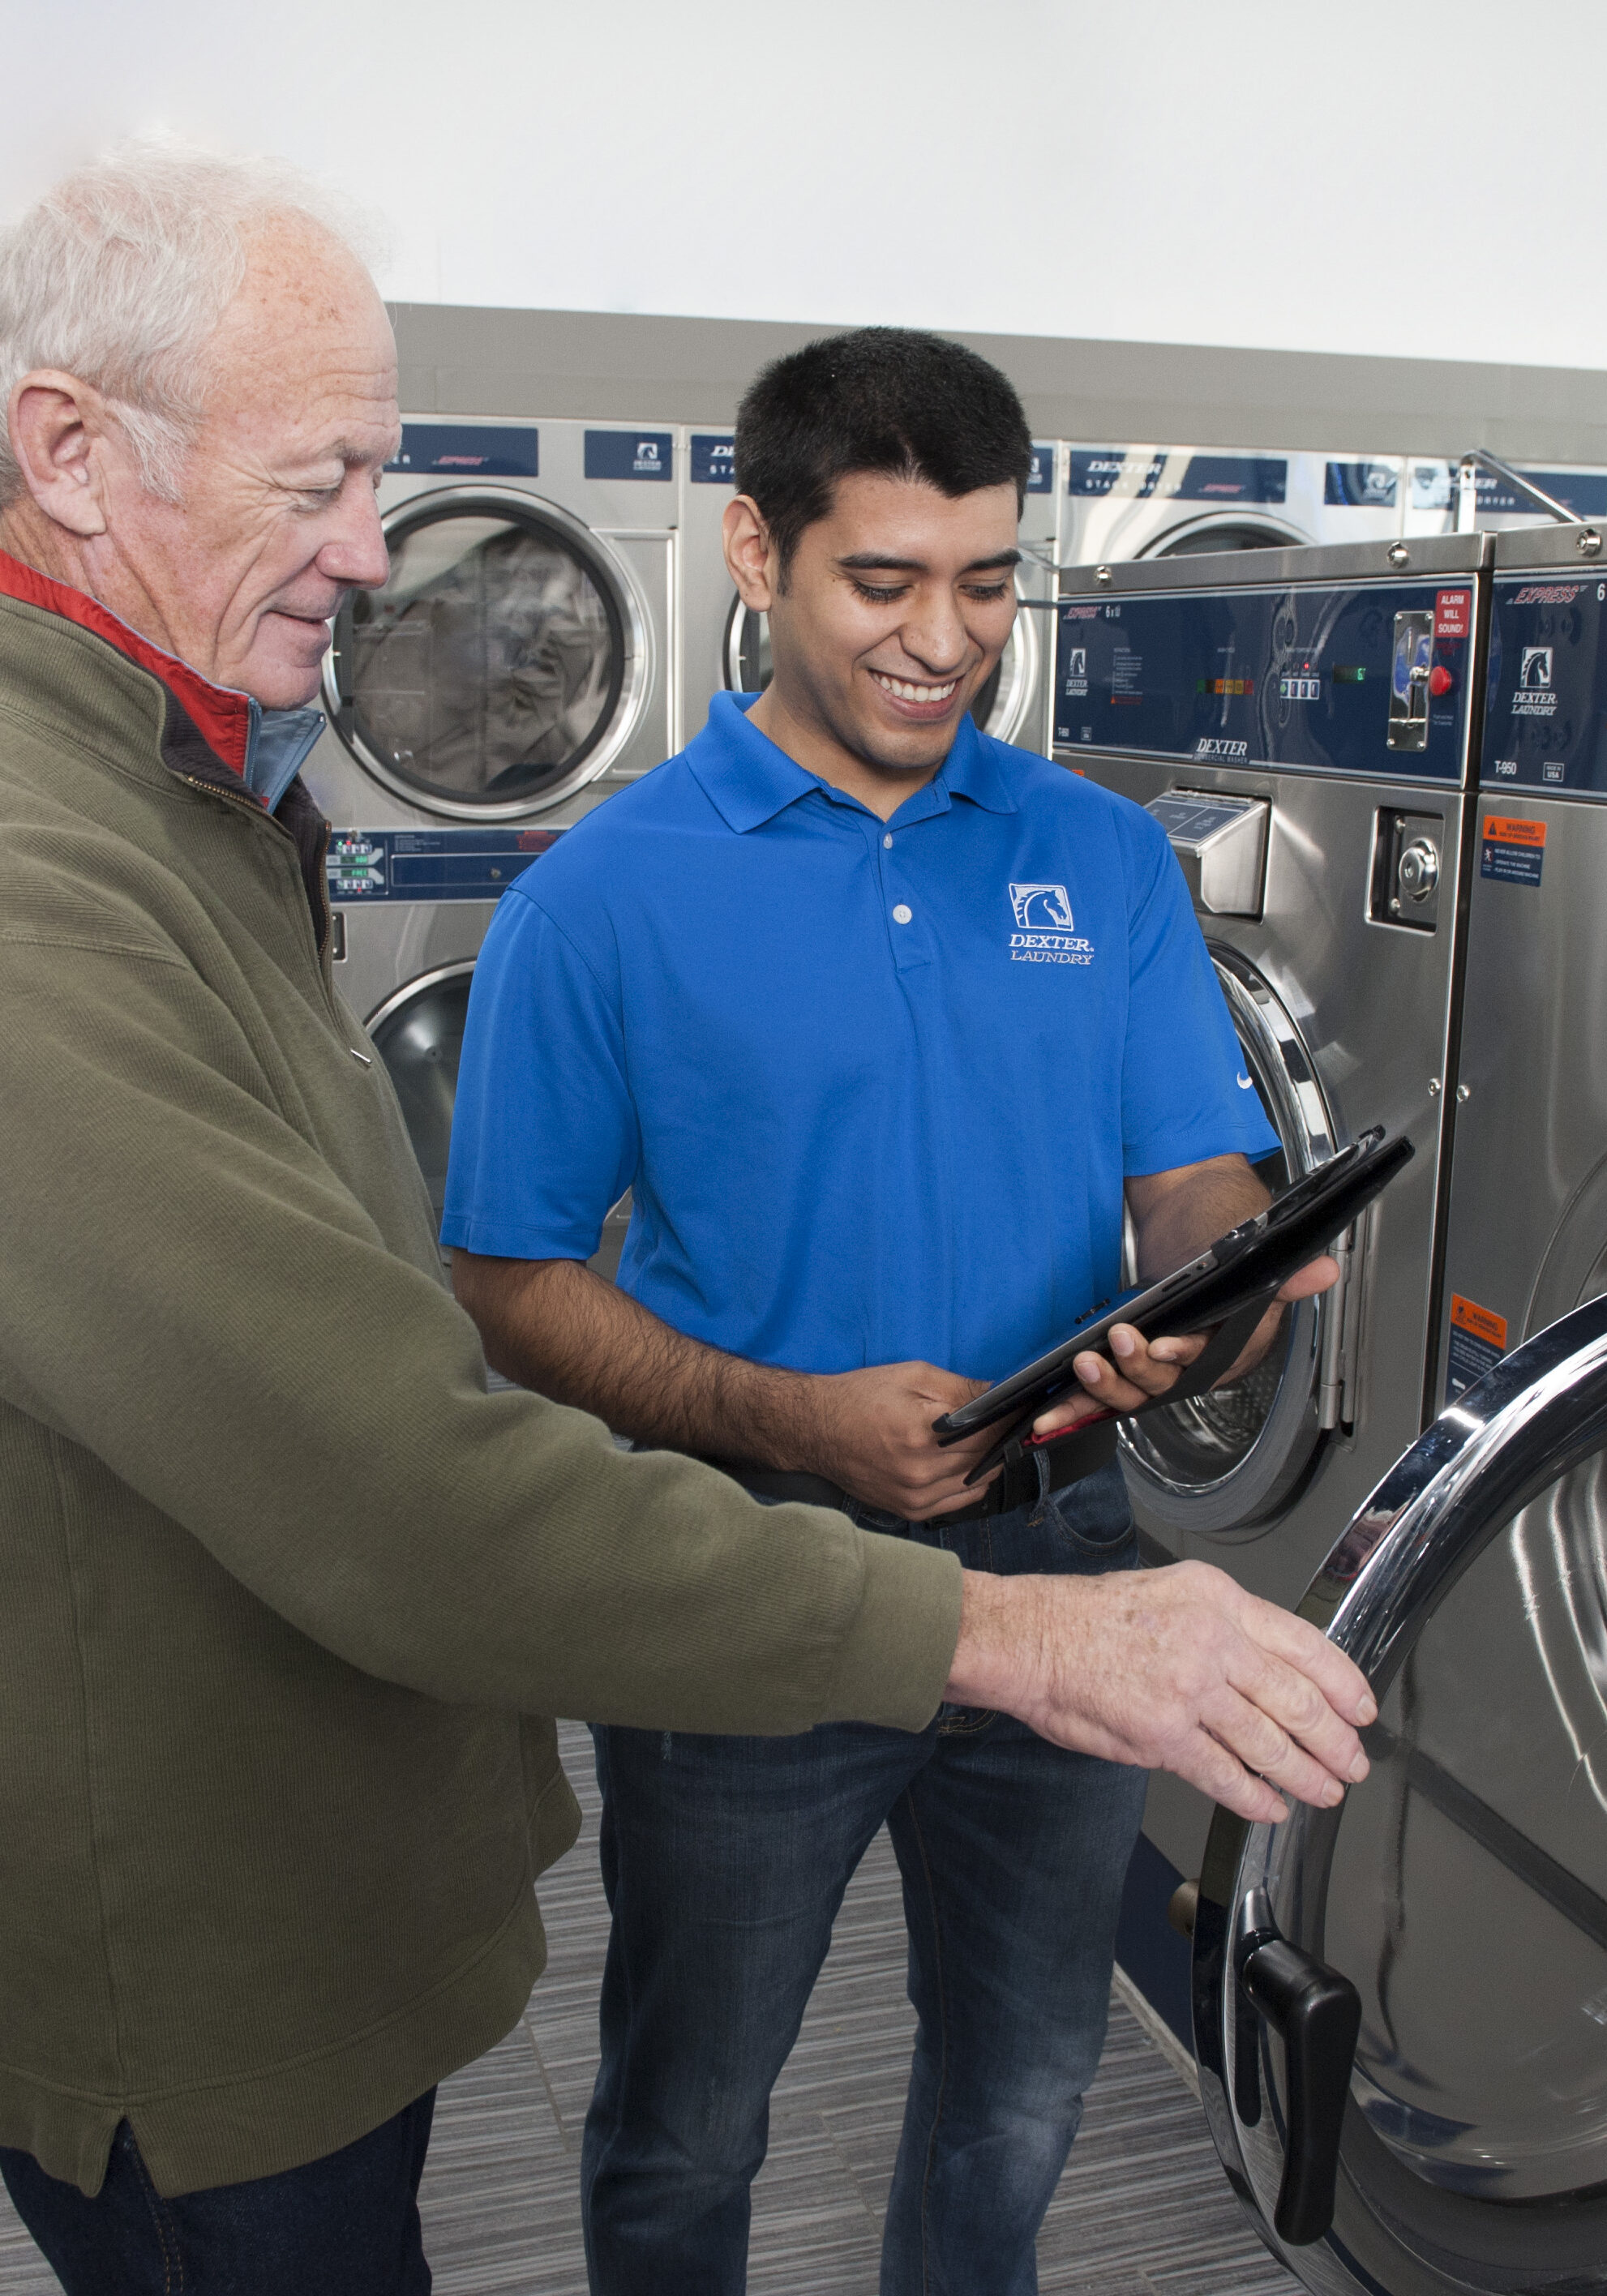 consulting scaled| commercial laundromat services